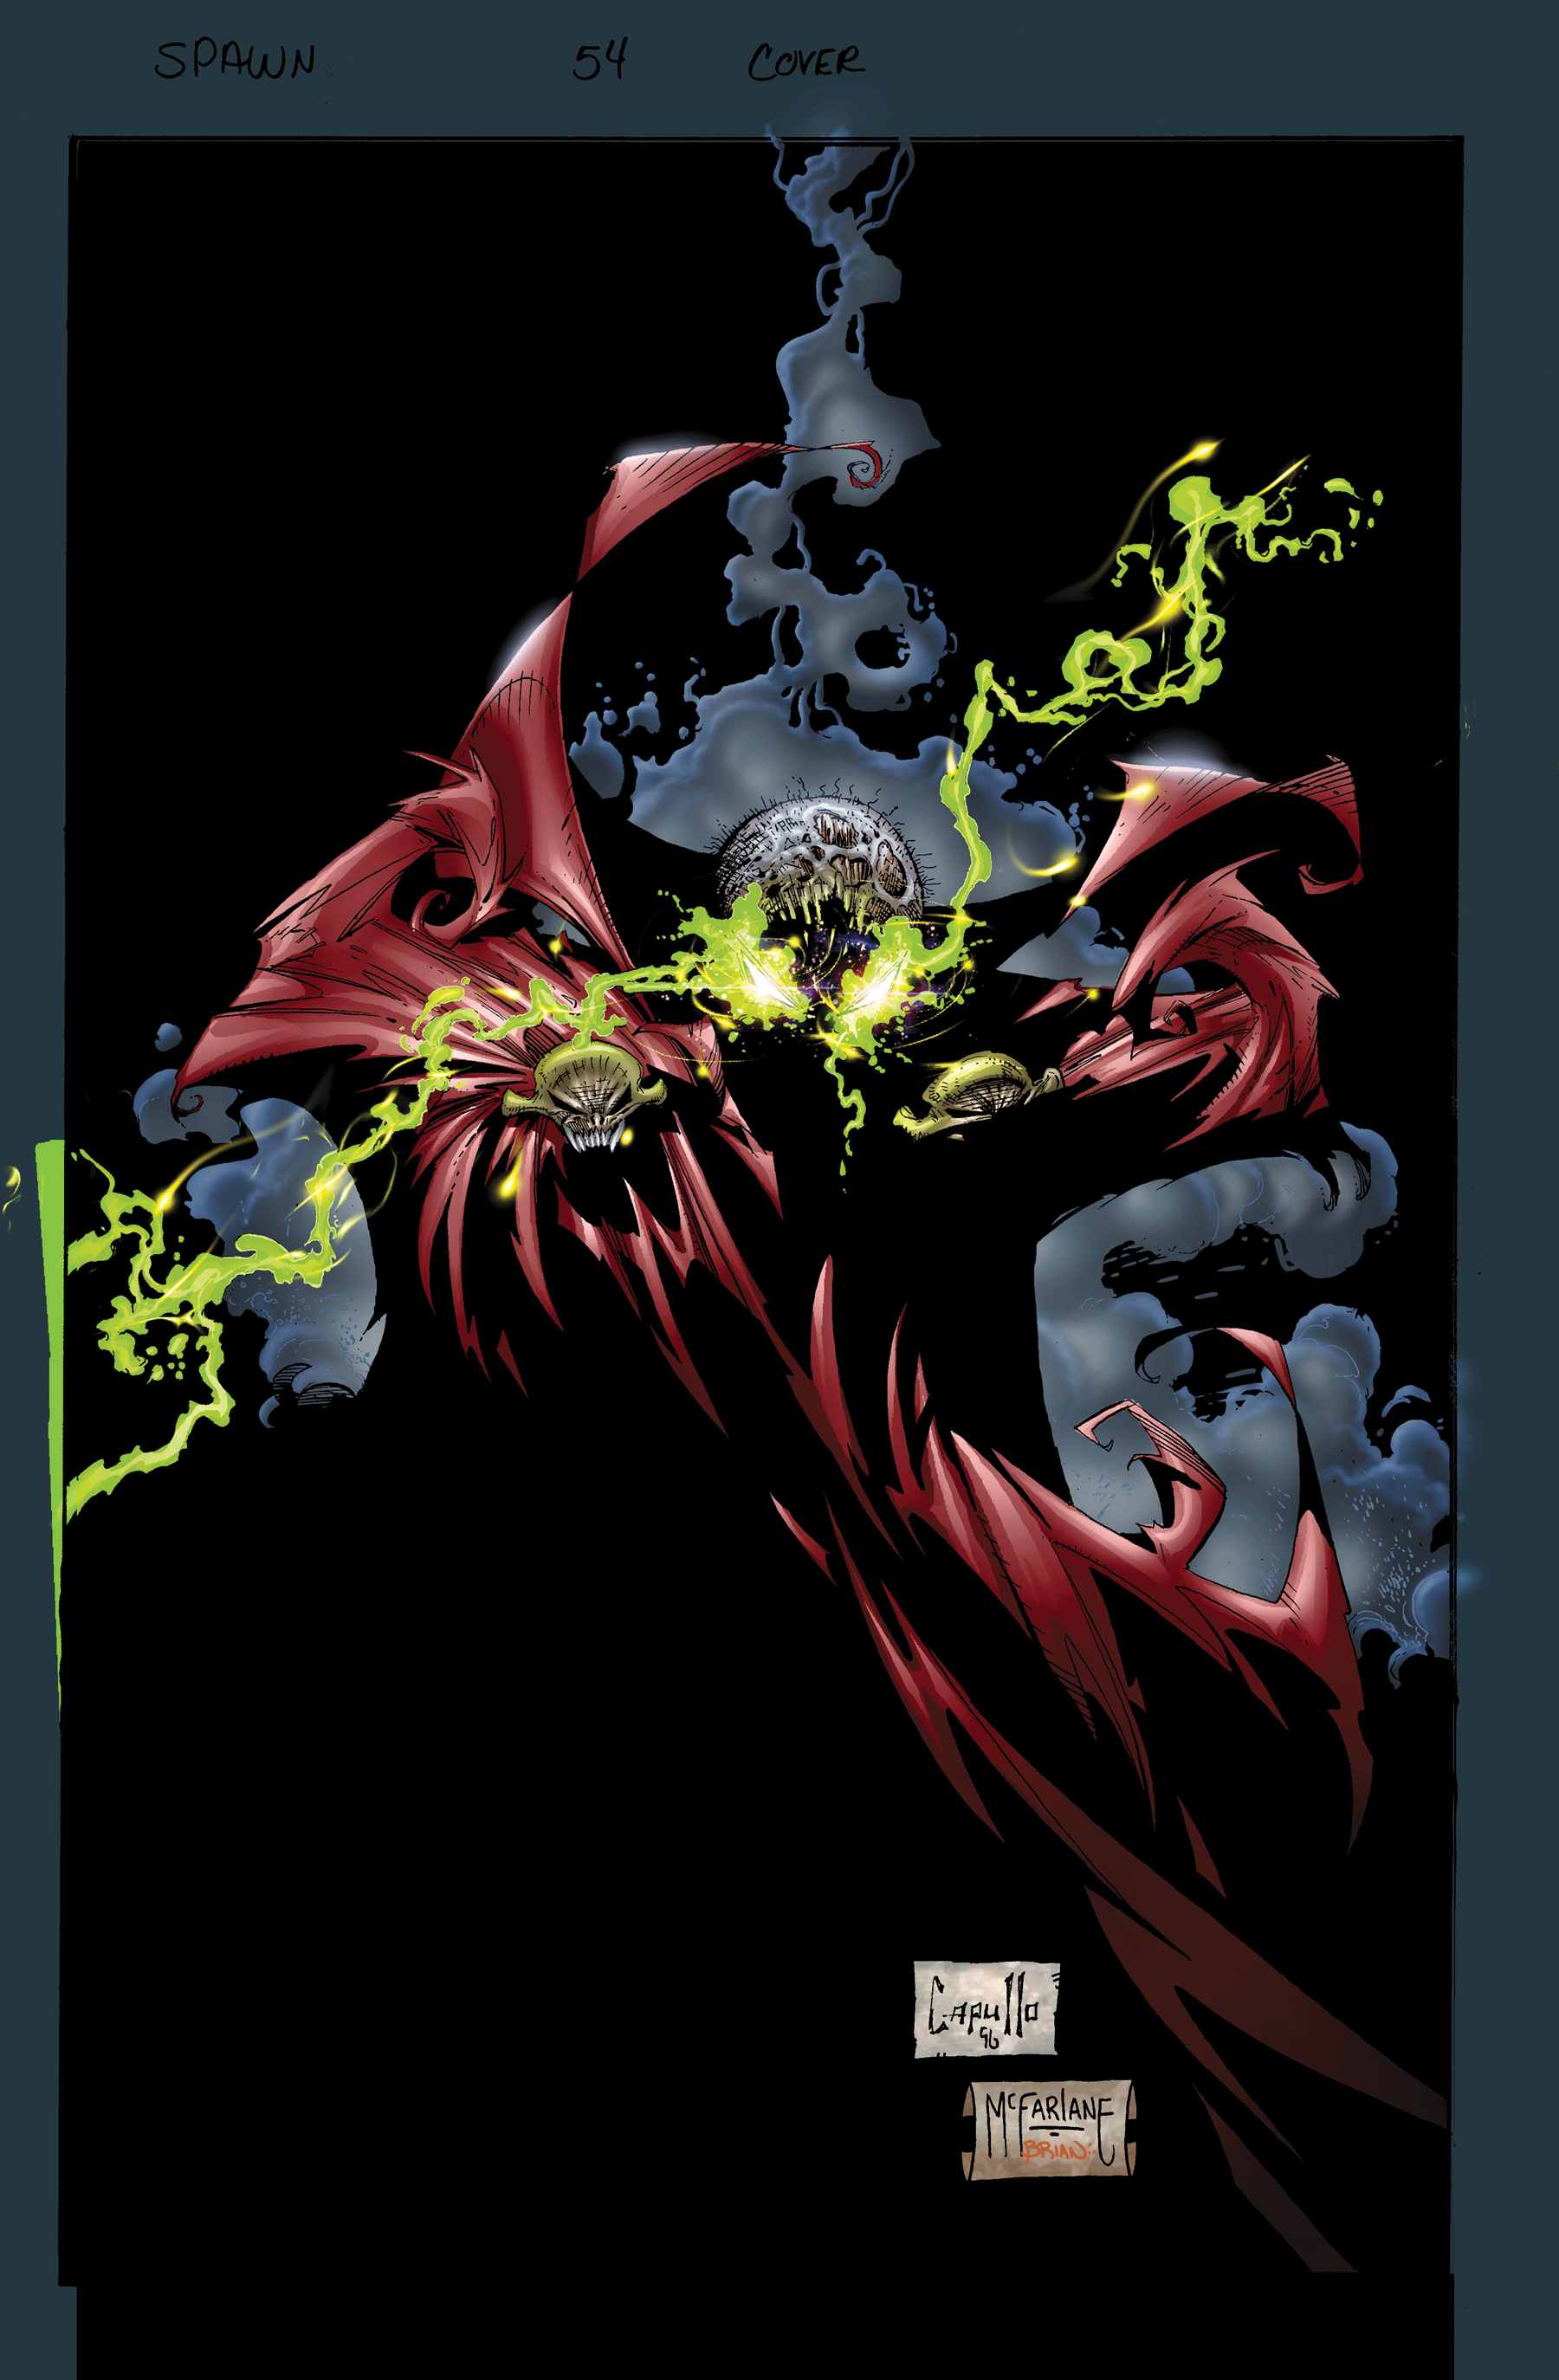 Spawn-54-Cover-NffO-LOGO